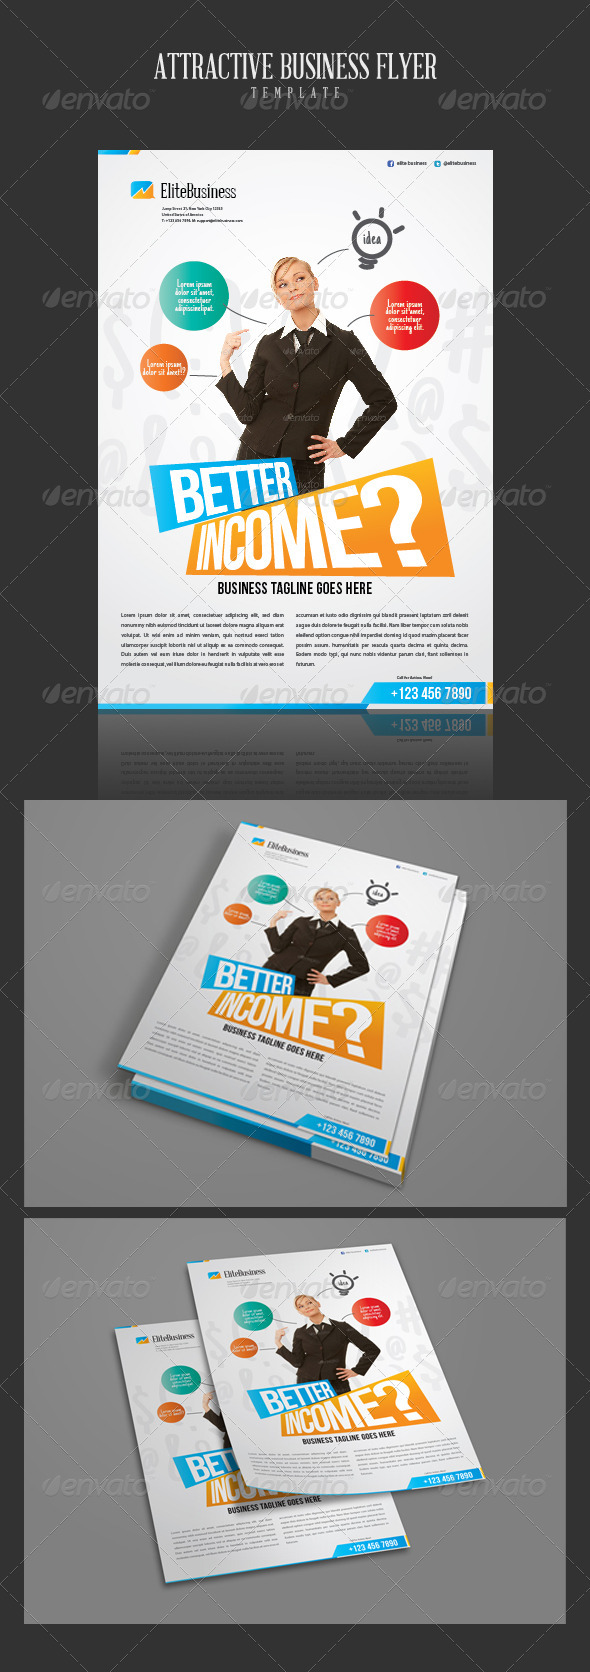 GraphicRiver Attractive Business Flyer Template 2605327